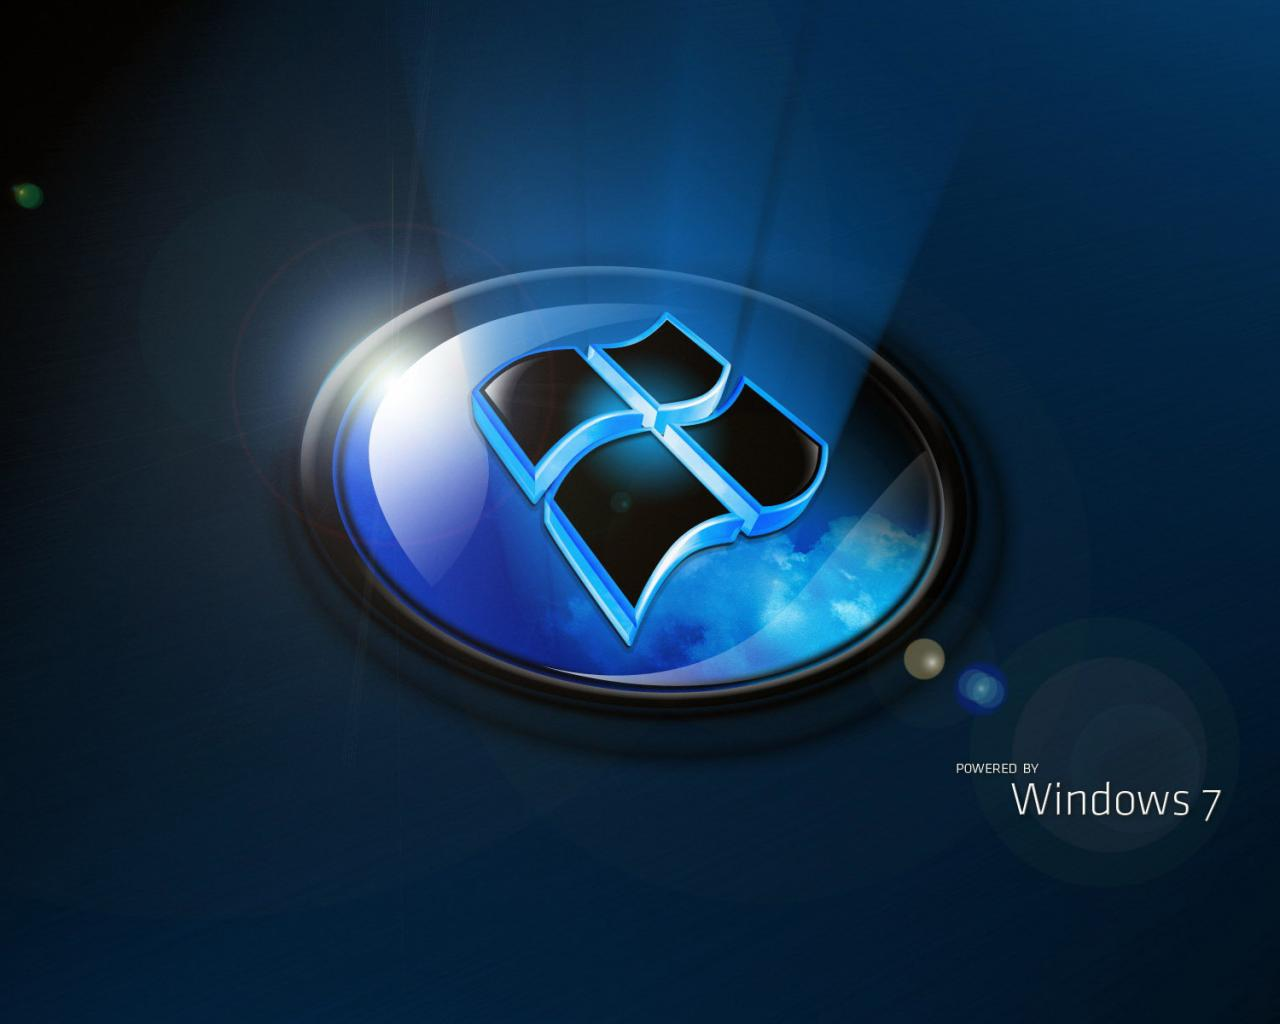 Windows 7 lighting rendering 3d 1280x1024